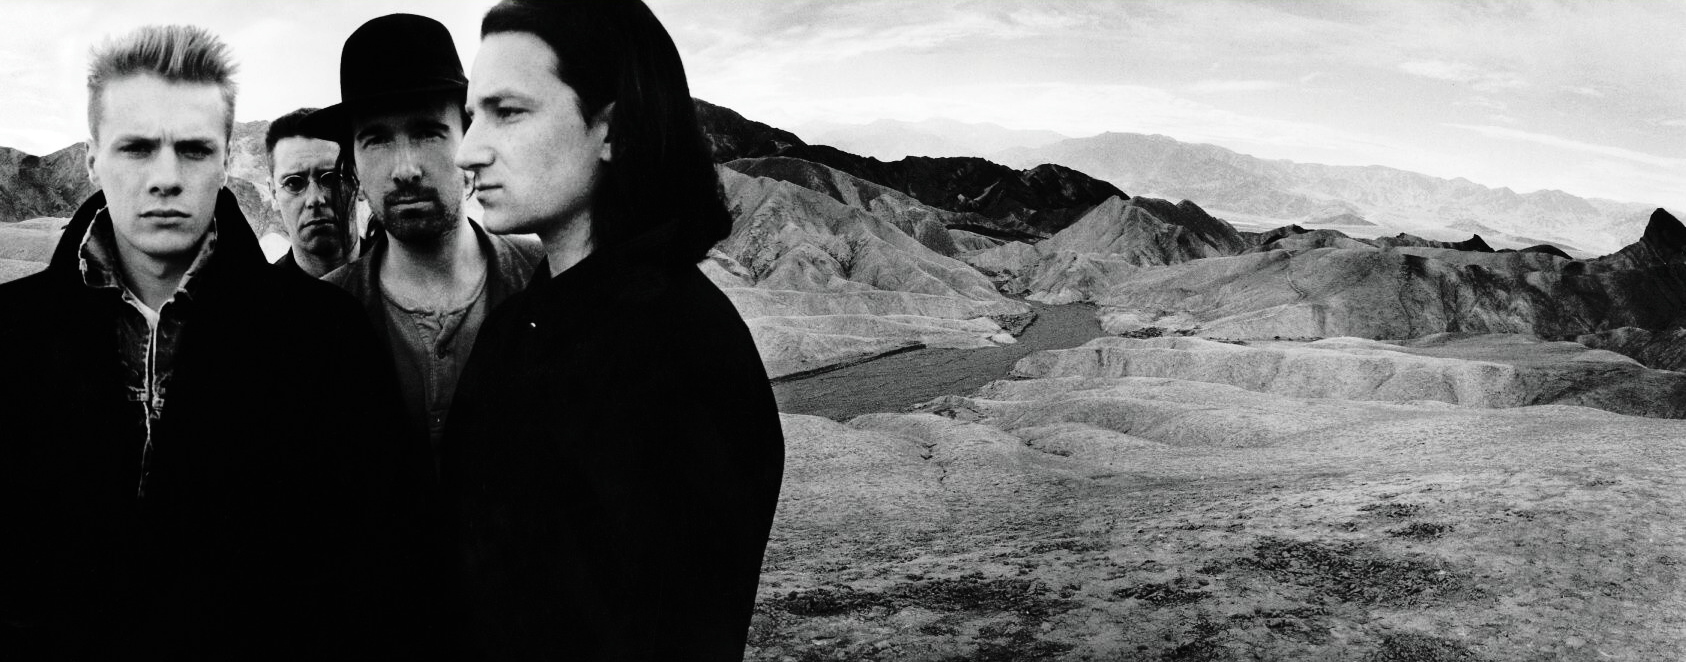 u2 joshua tree album cover - Blog